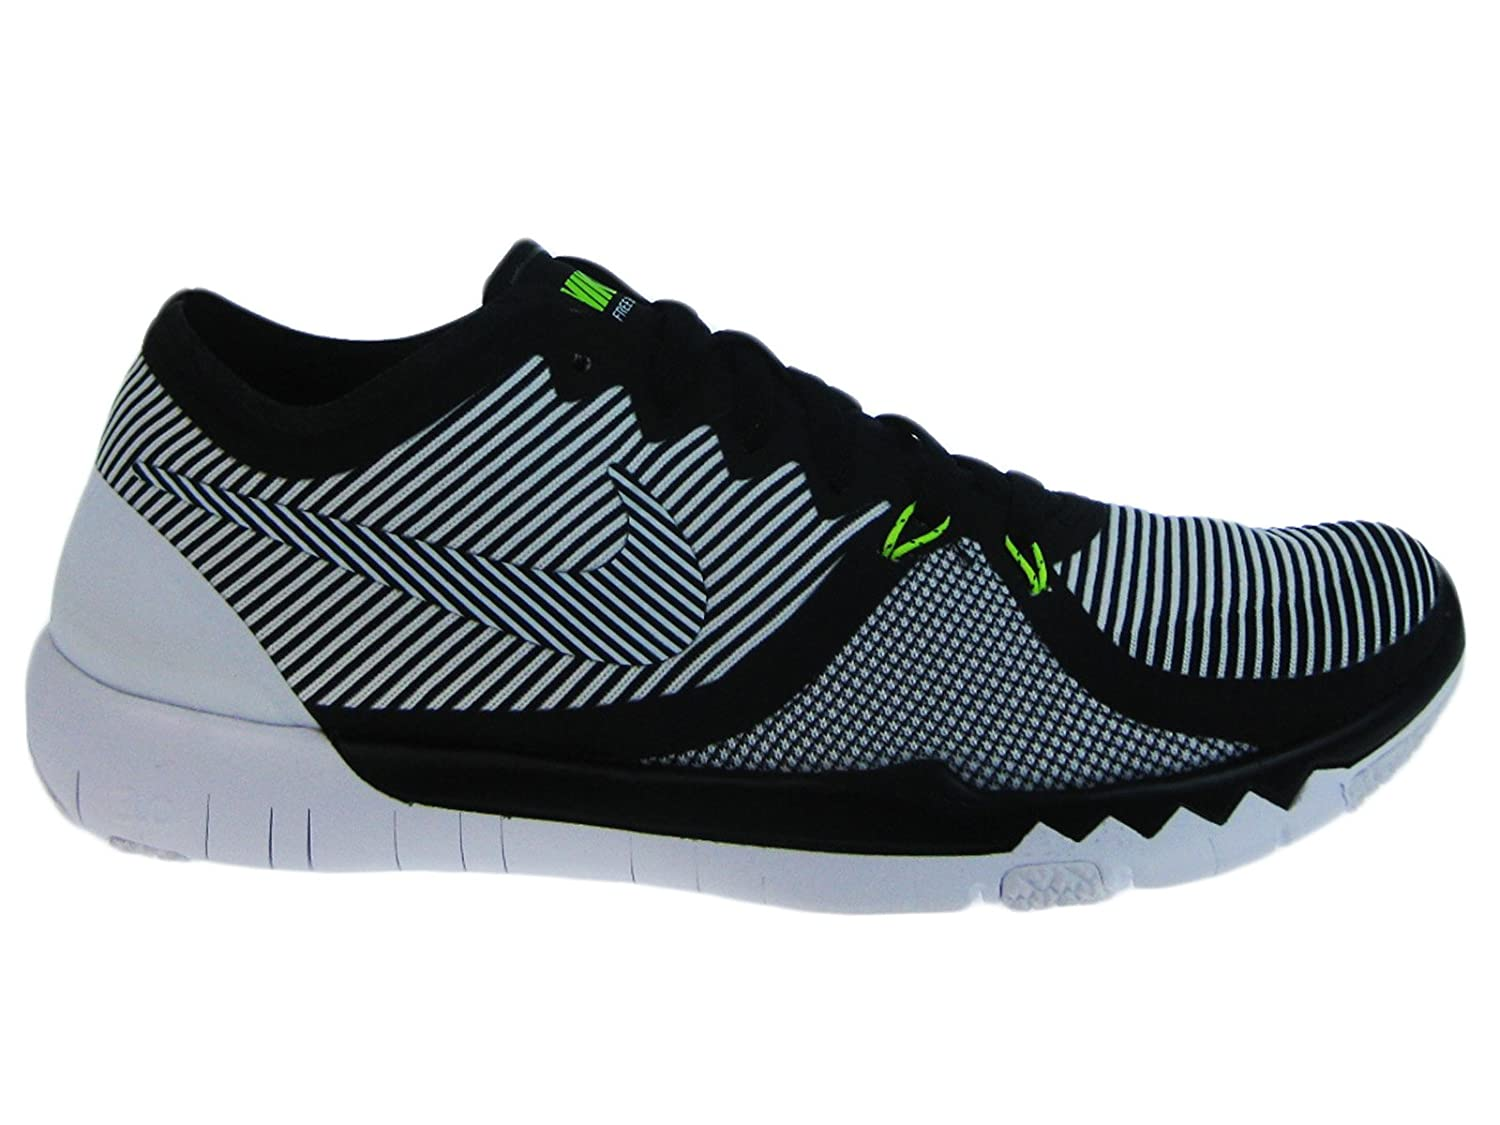 Nike Free 3.0 V5 EXT 579828 001 Black/Sail/White Running WMNS